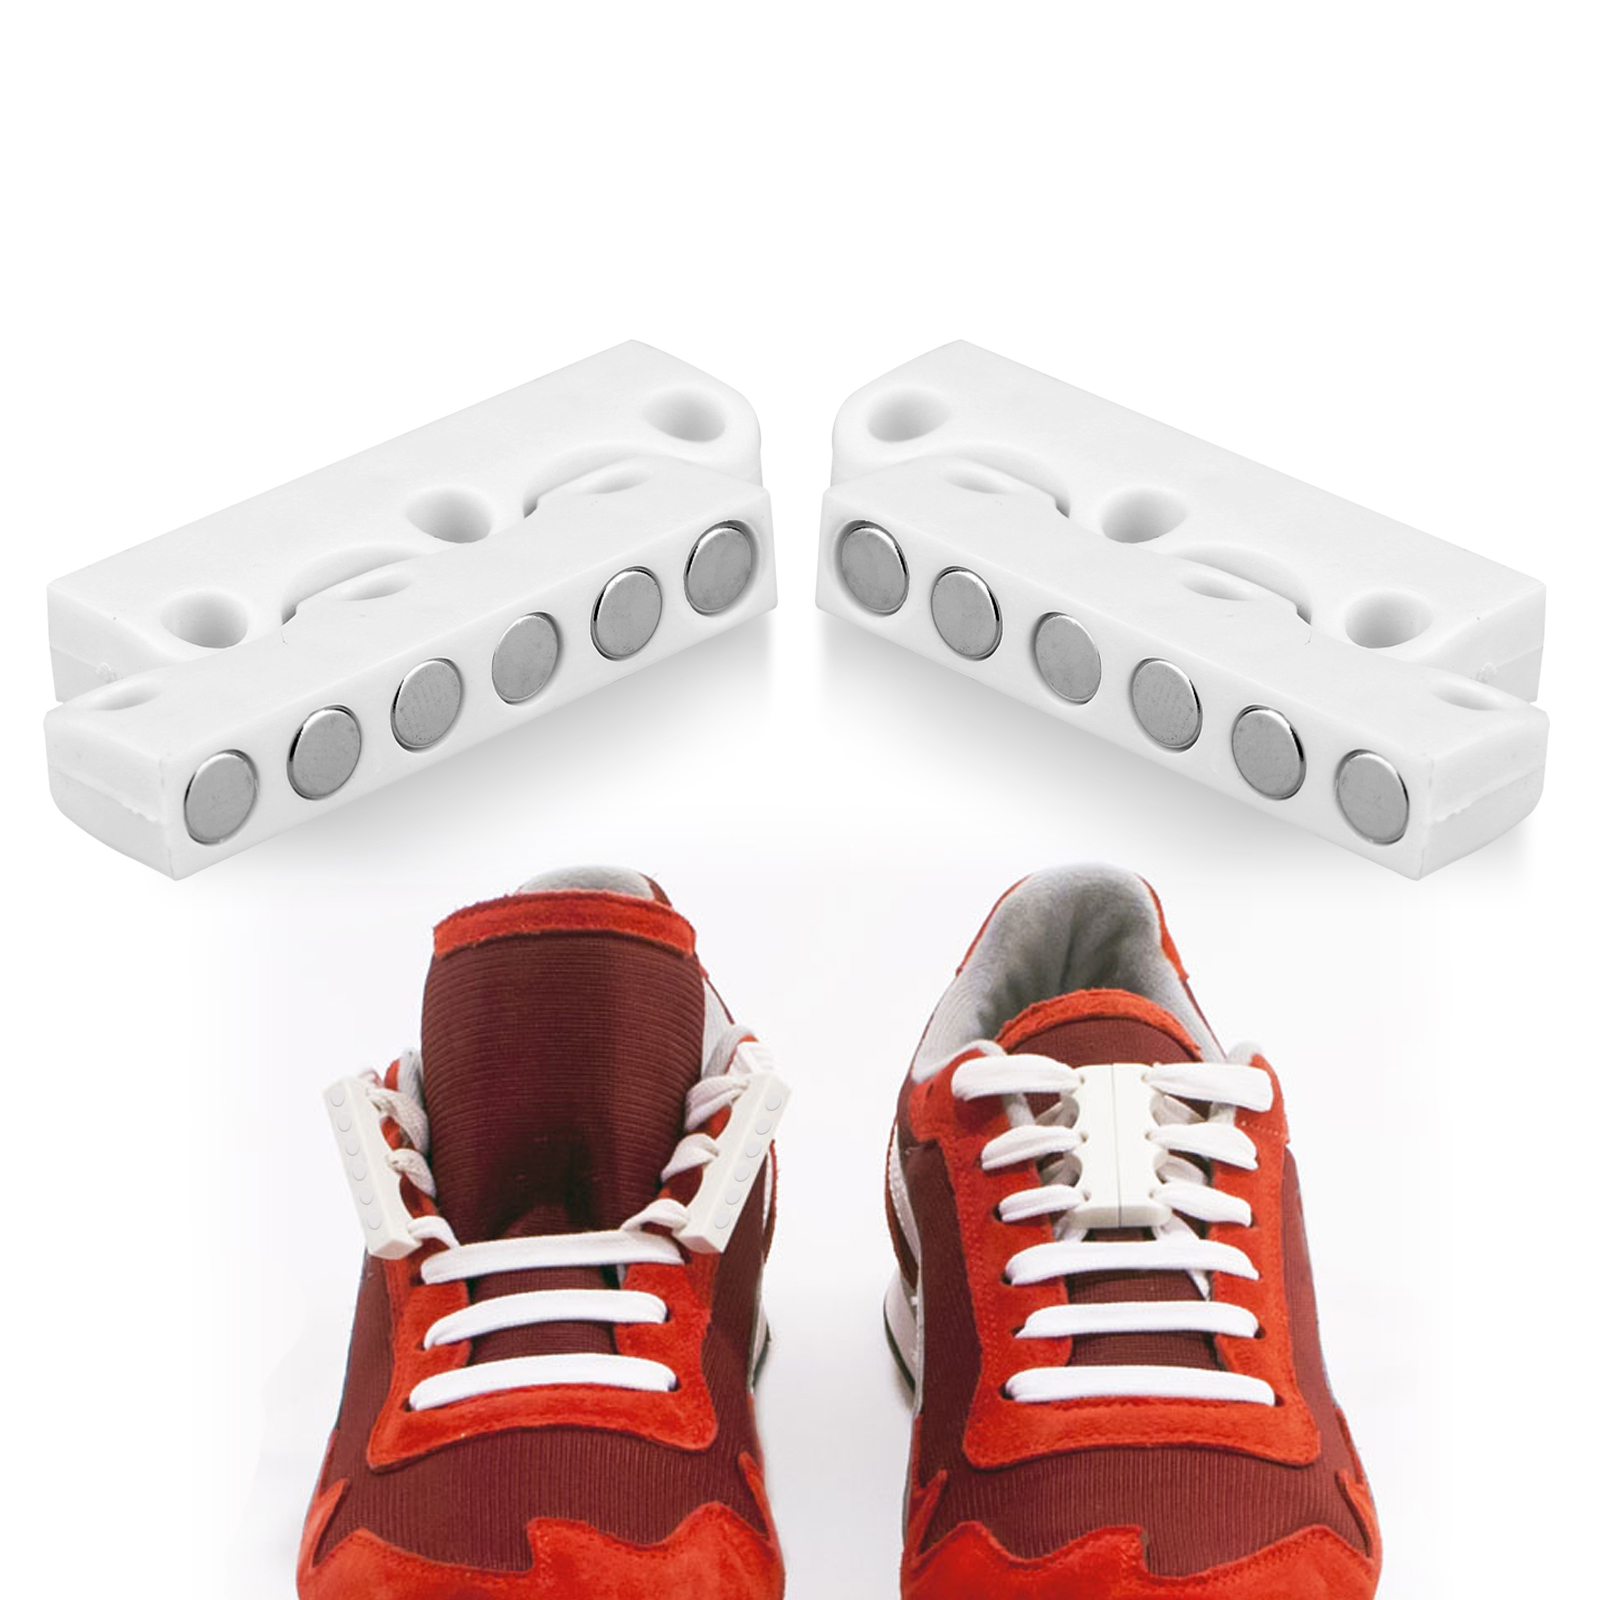 TSV Novelty DIY Shoe Buckles Sneaker No-Tie Magnetic Casual Closure Snap-in Shoelace for Adults & Kids - White